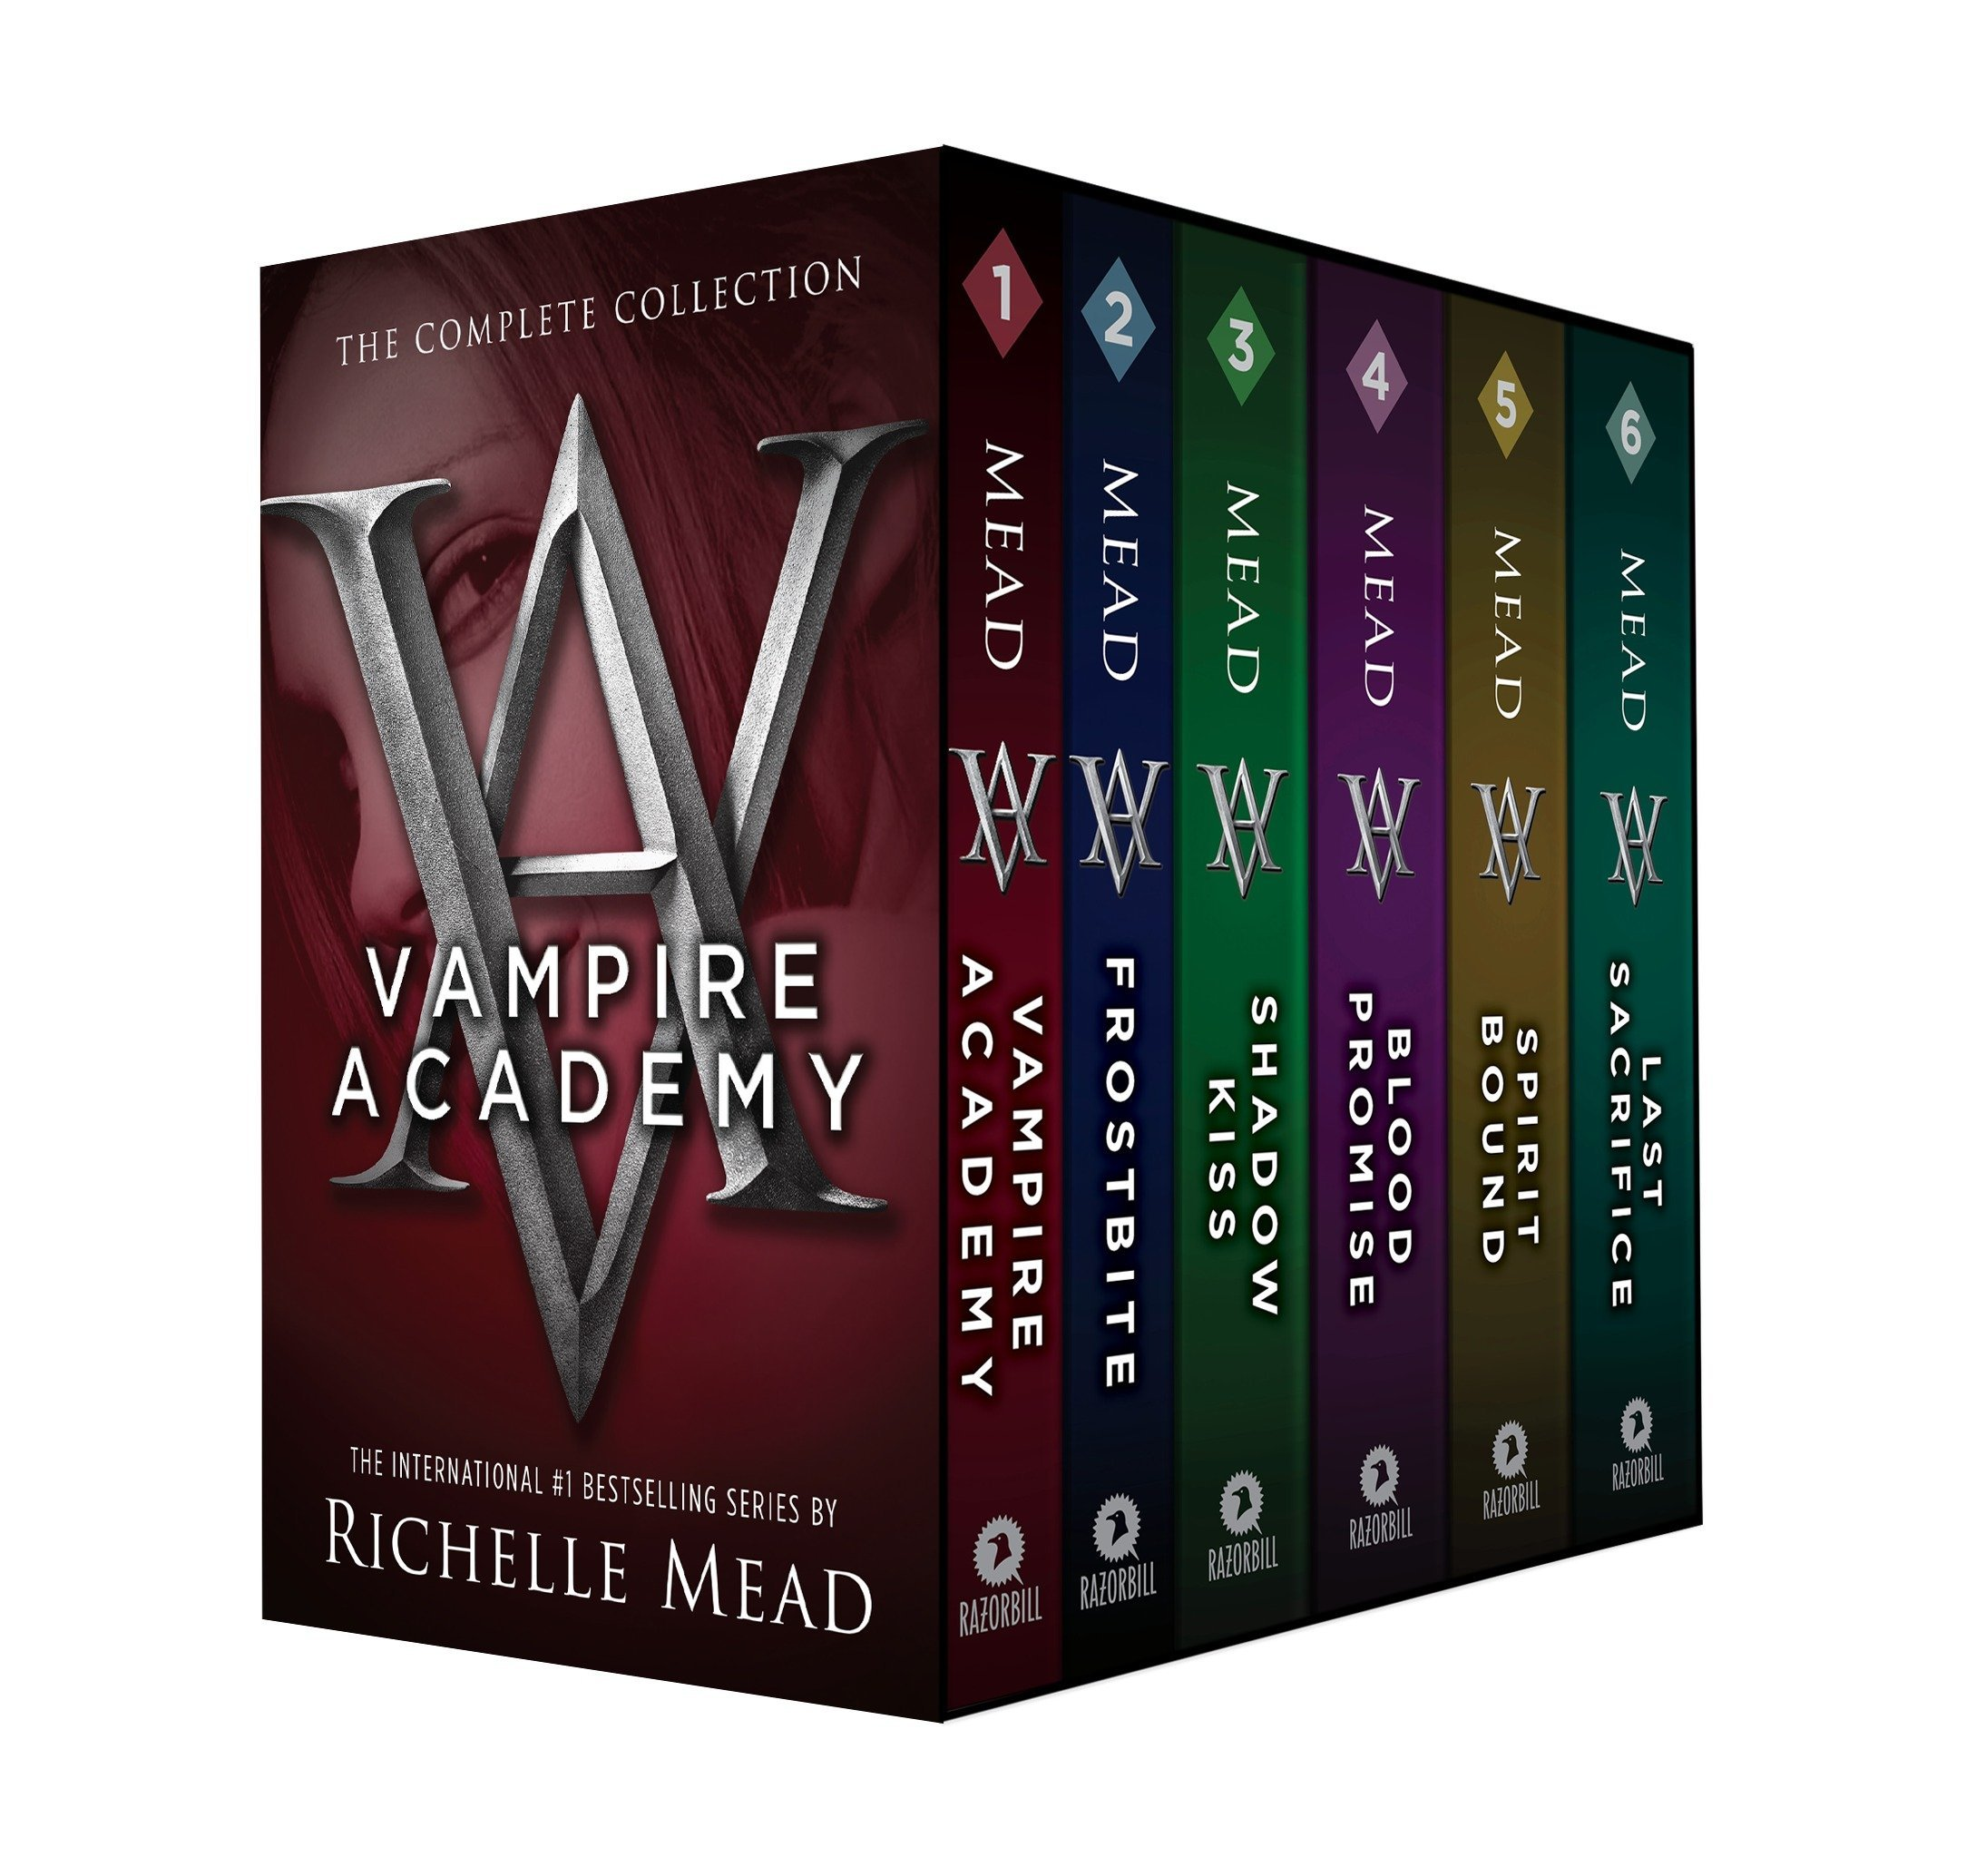 Amazon.com: Vampire Academy Box Set 1-6 (9781595147585): Mead, Richelle:  Books